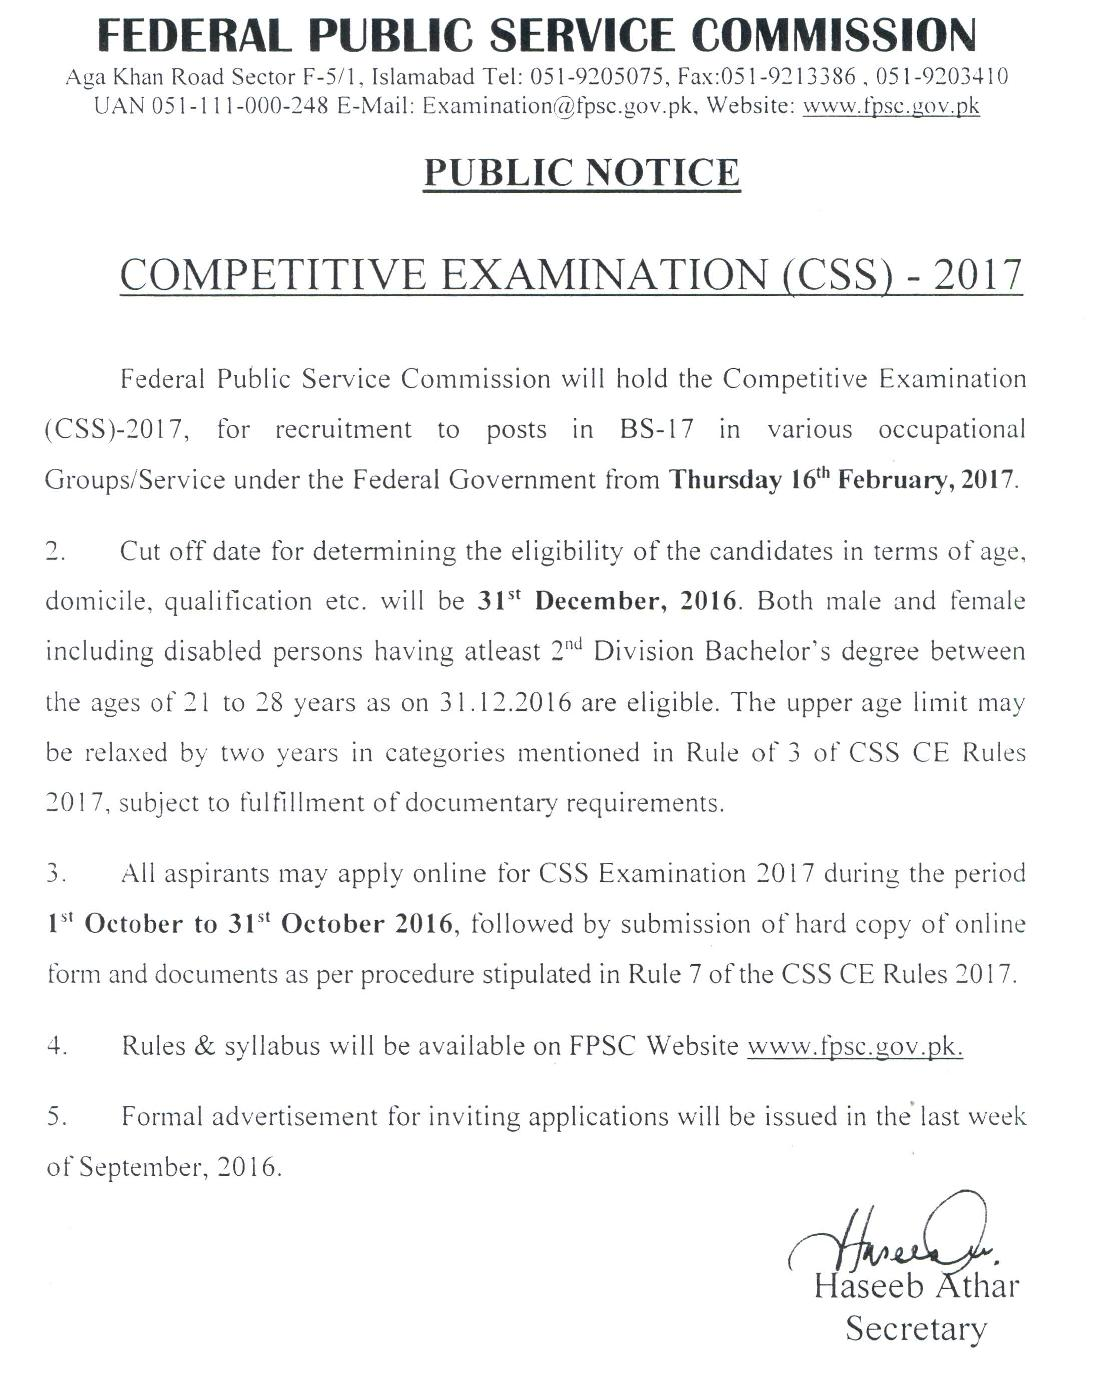 CSS 2017 Competitive Examination Schedule